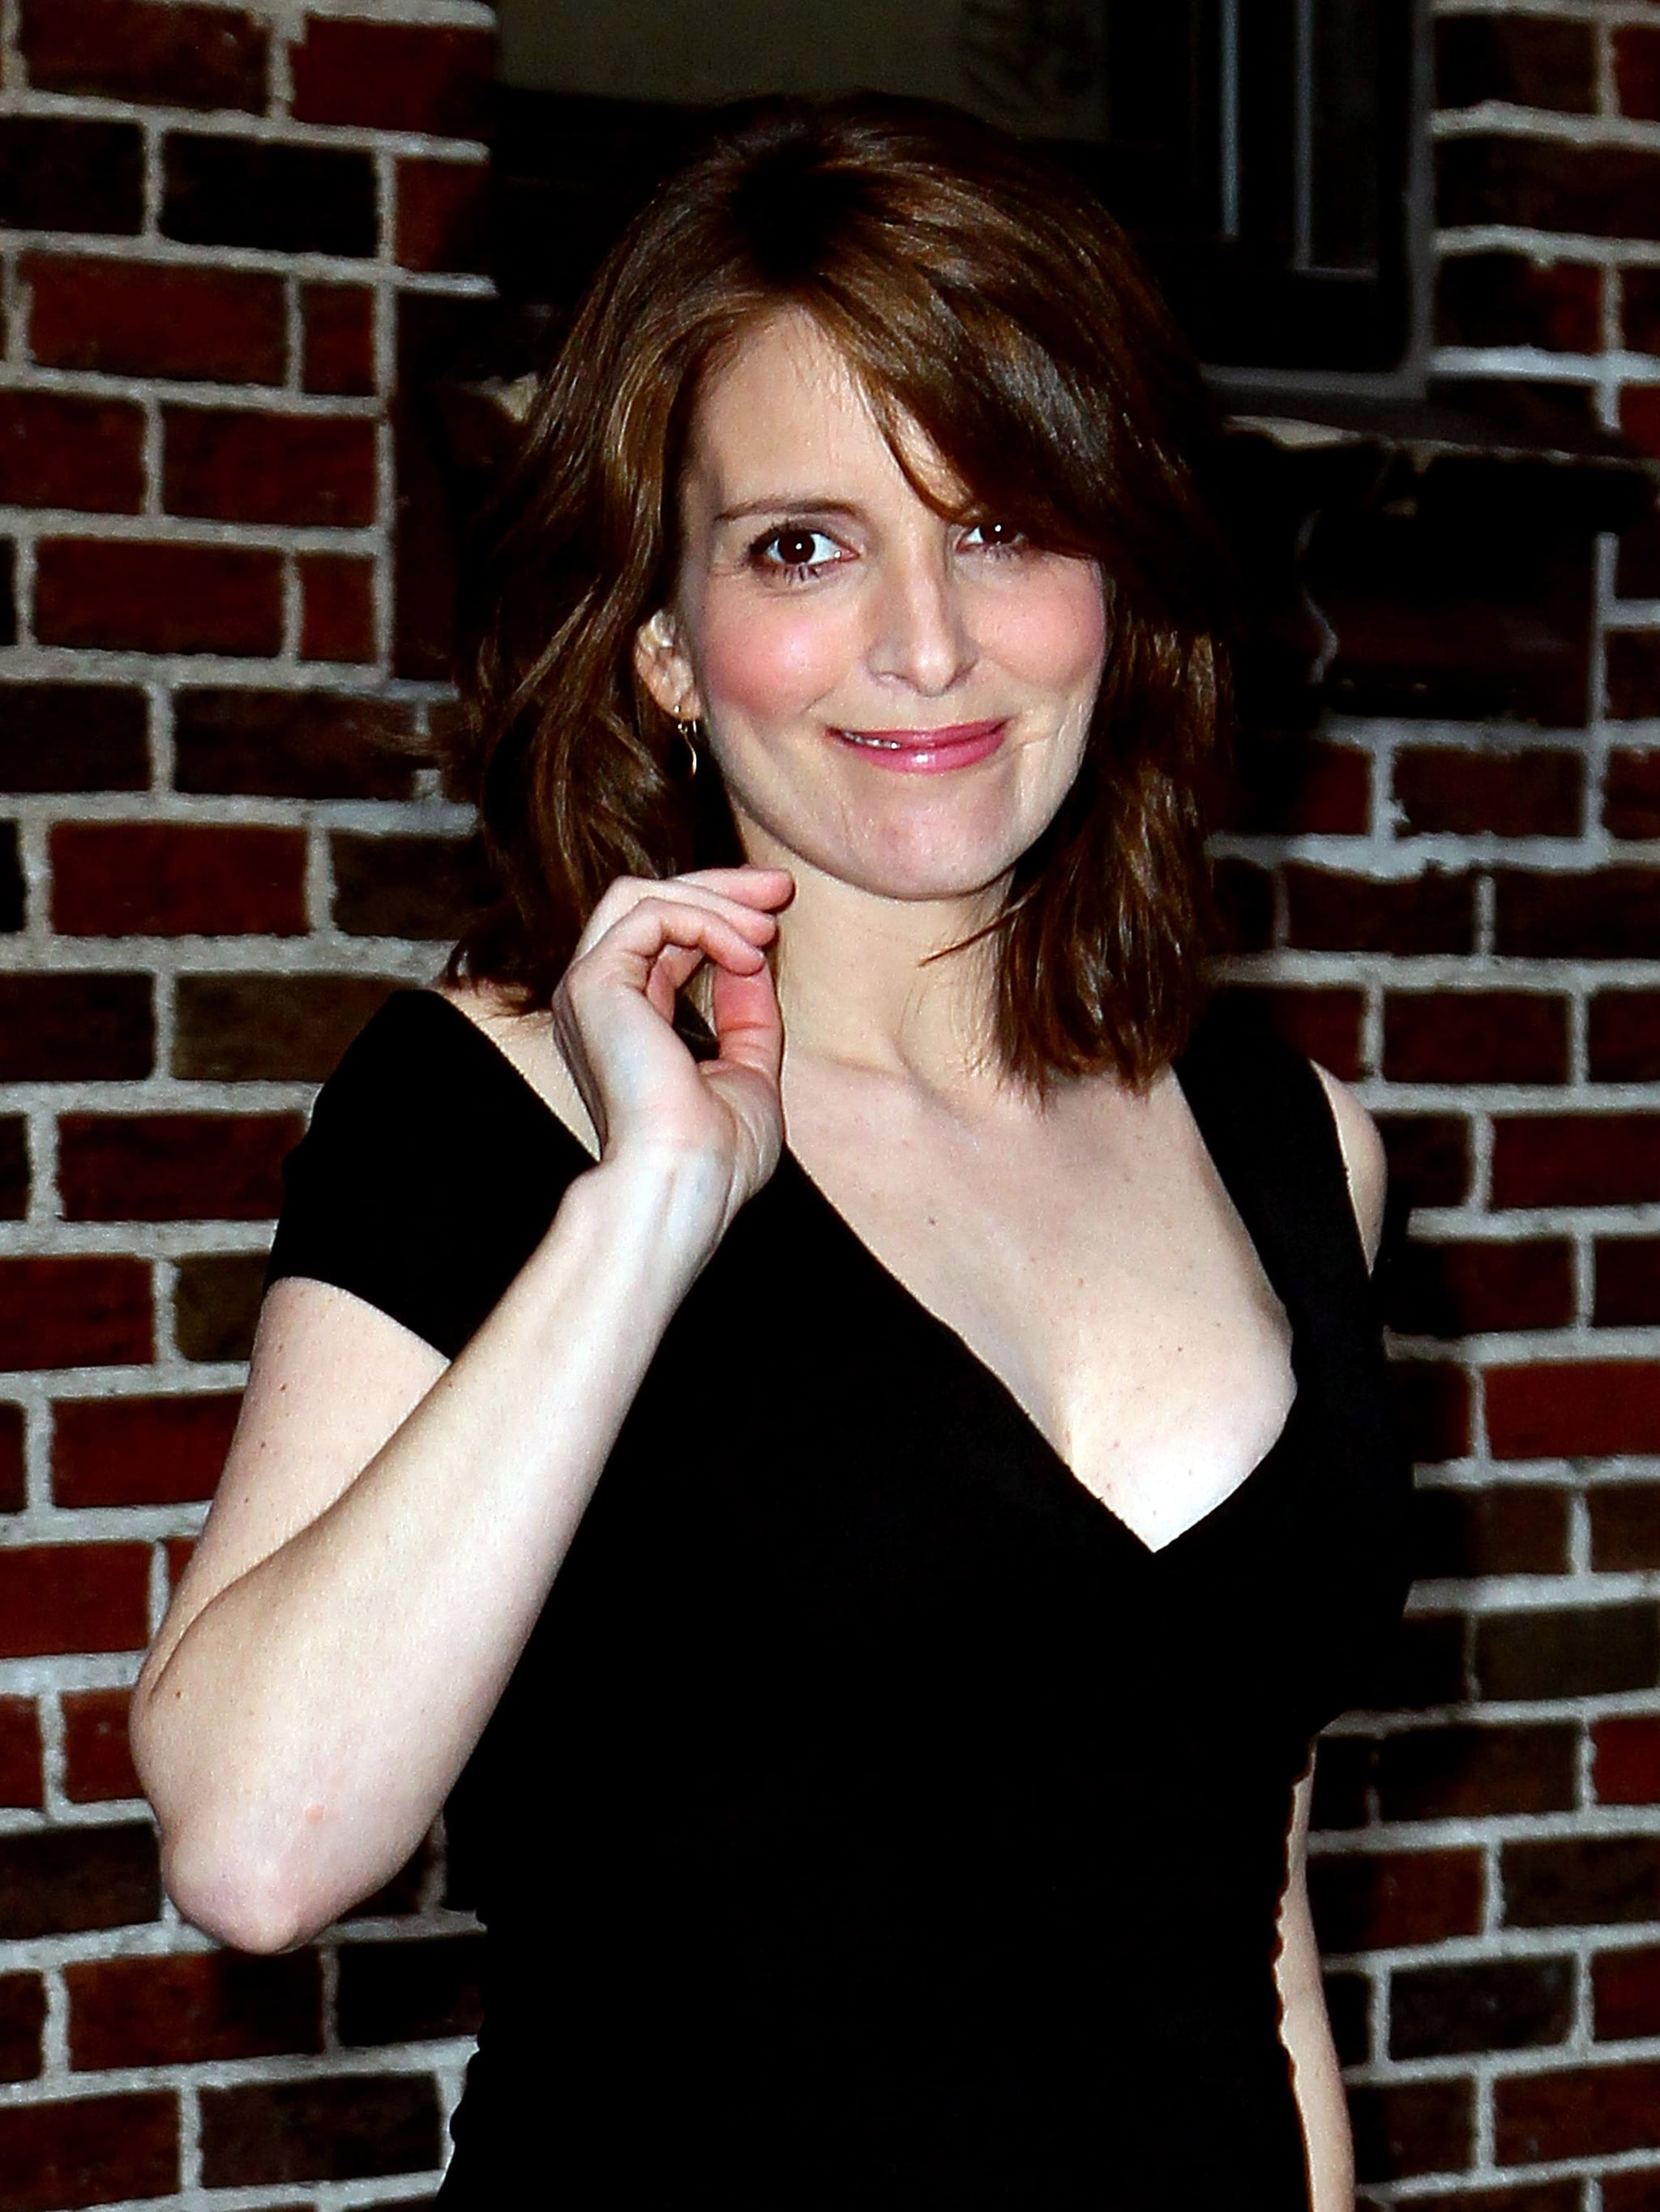 Tina fey bossypants pdf pictures